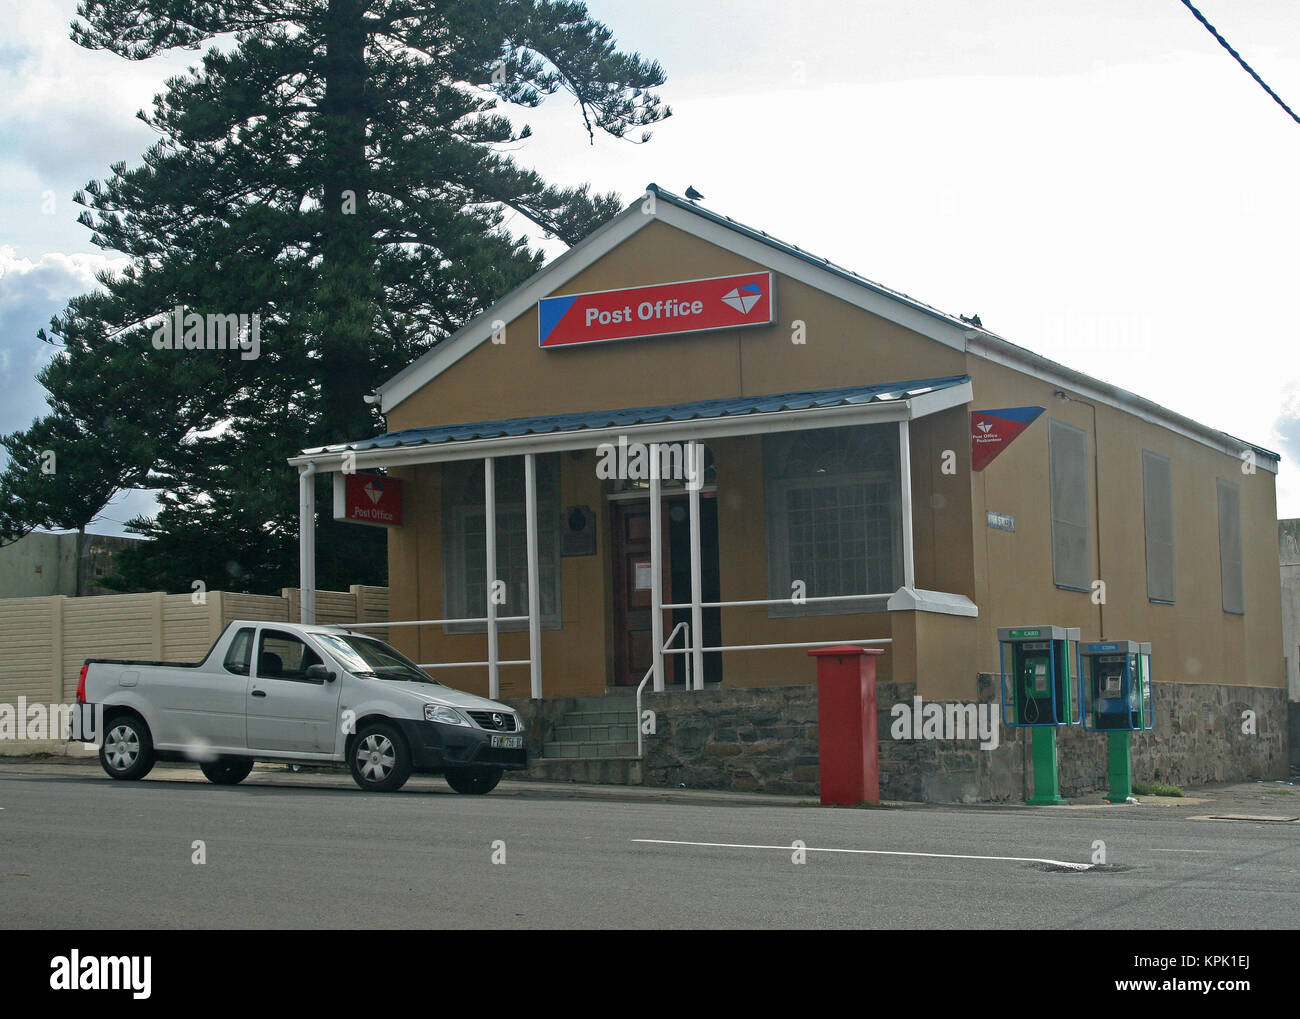 Local Post Office, East London, Eastern Cape, South Africa. - Stock Image